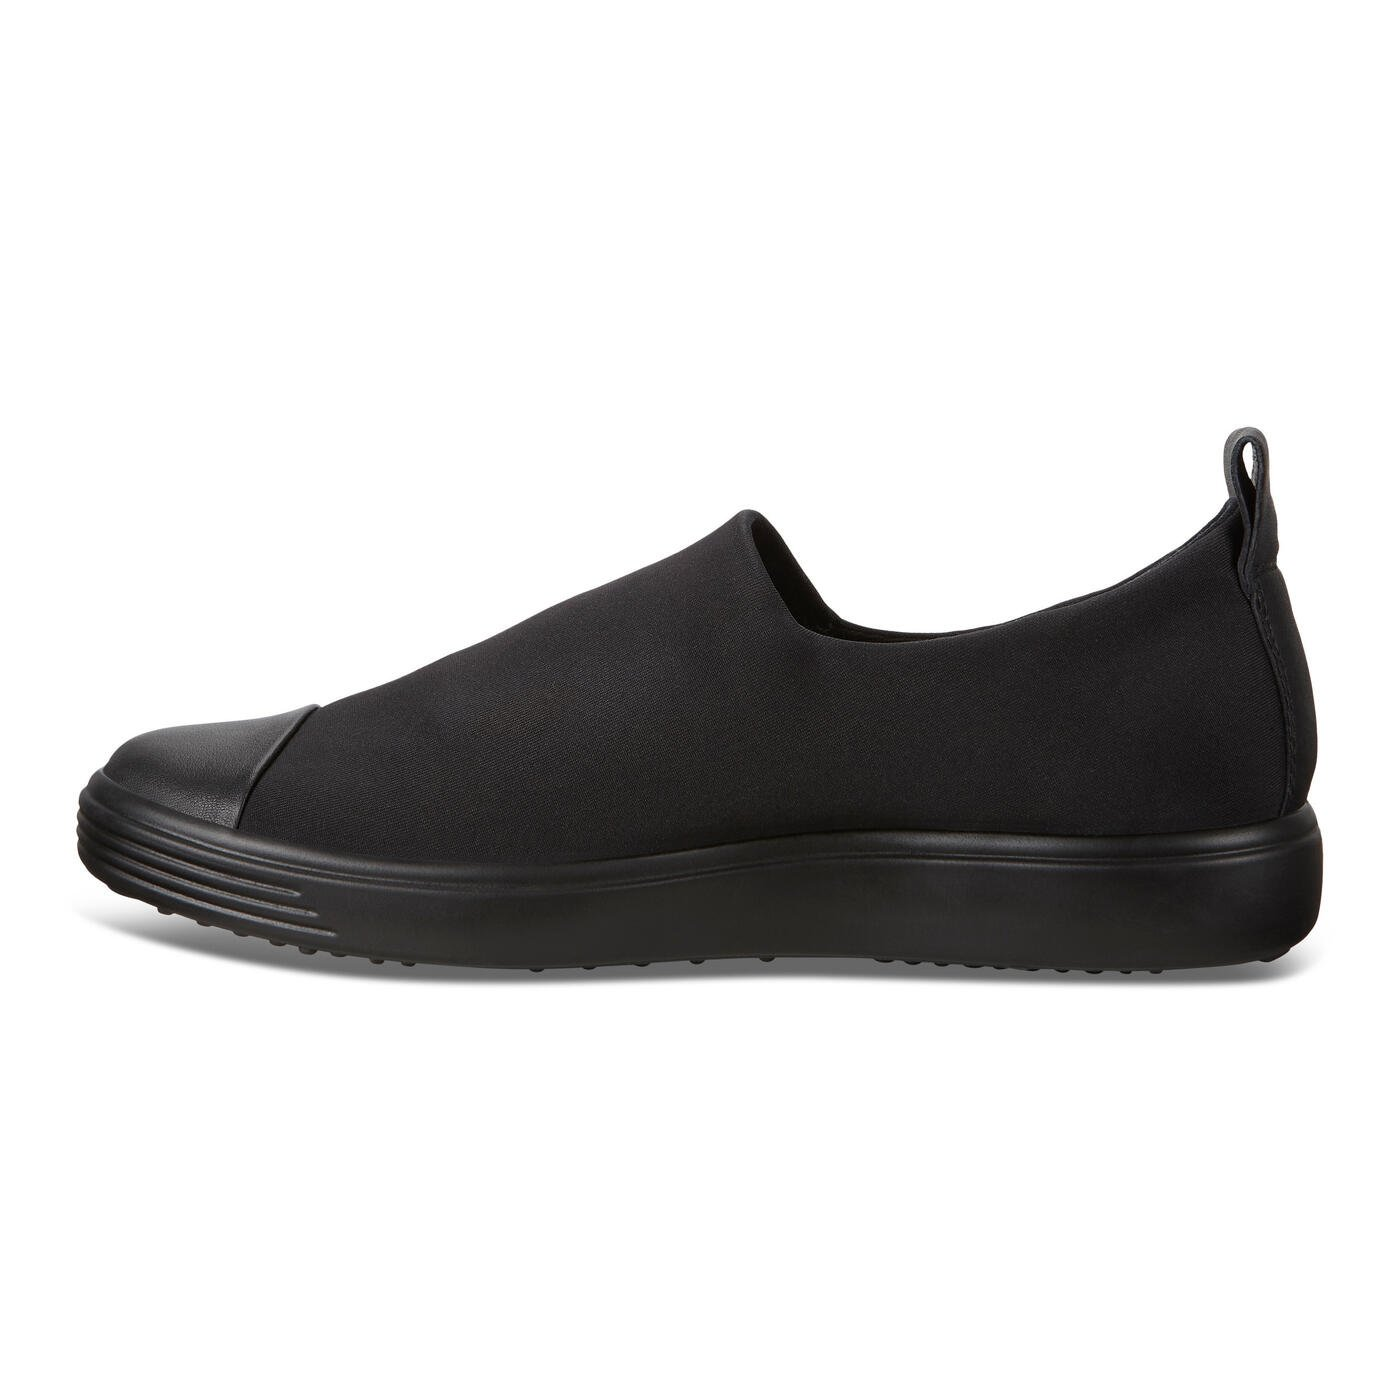 ECCO SOFT7 Womens Slip-On Gore-Tex